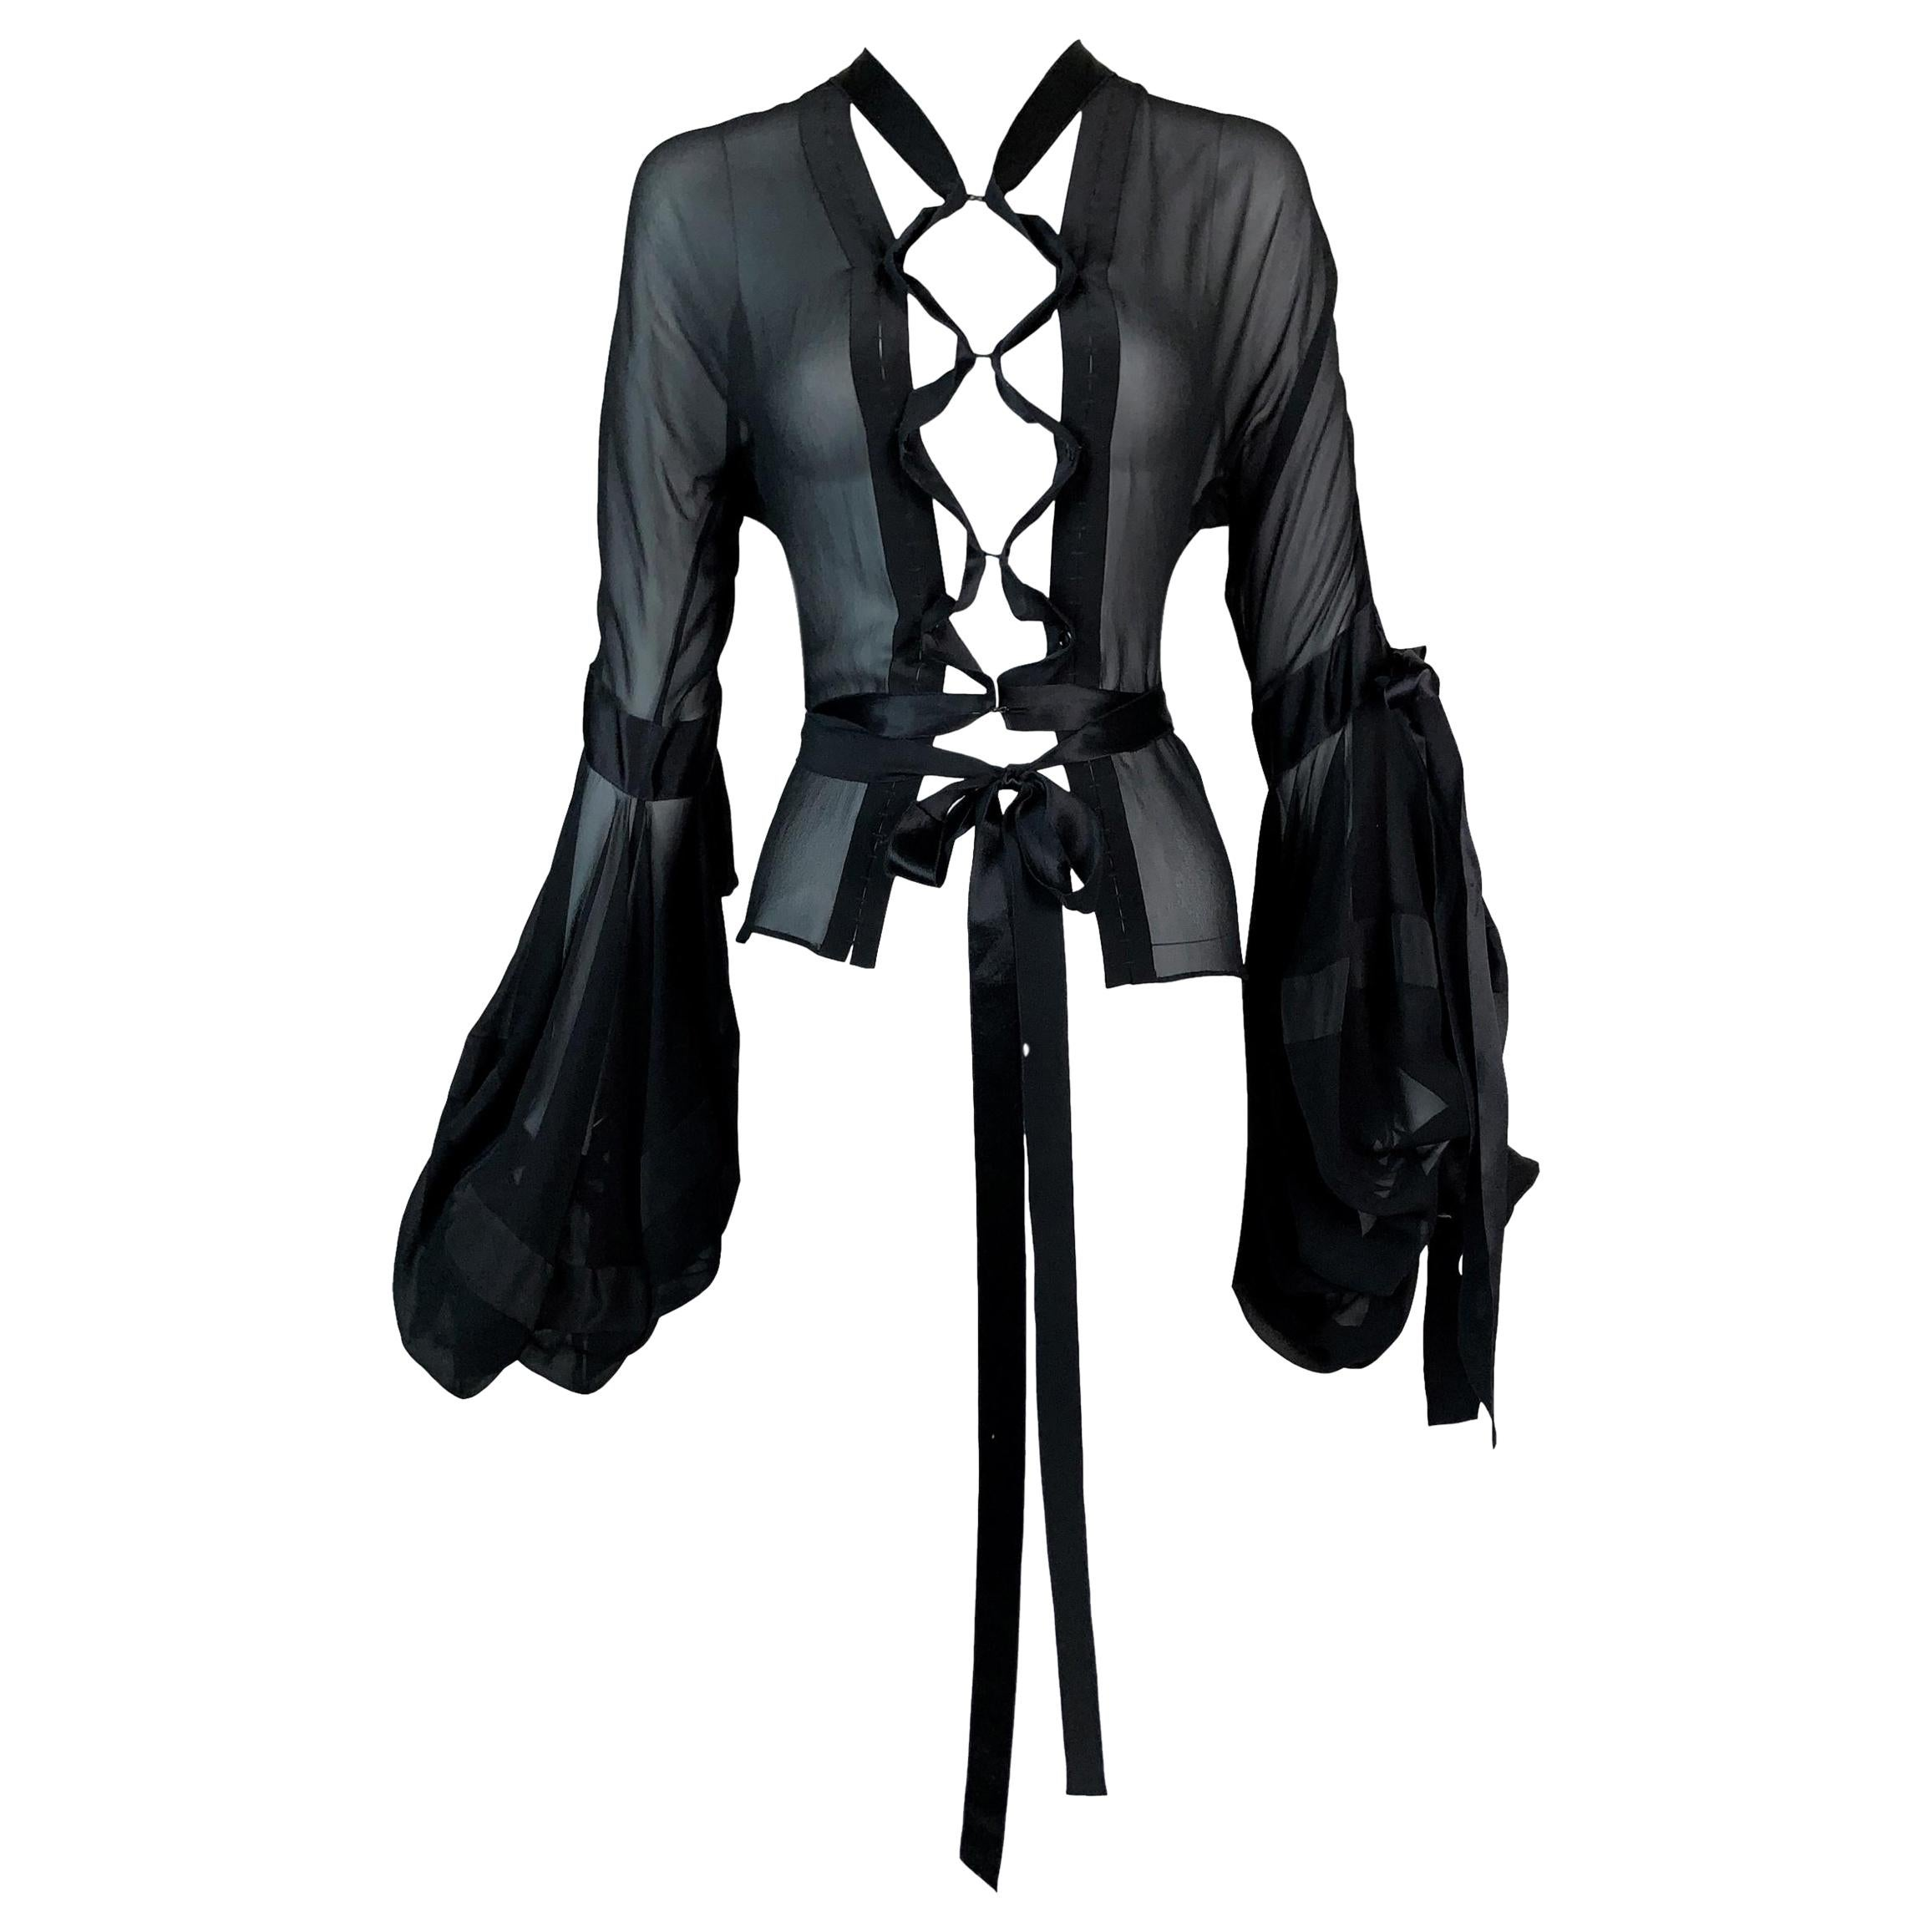 F/W 2002 Yves Saint Laurent Tom Ford Sheer Black Silk Lace Up Blouse Top